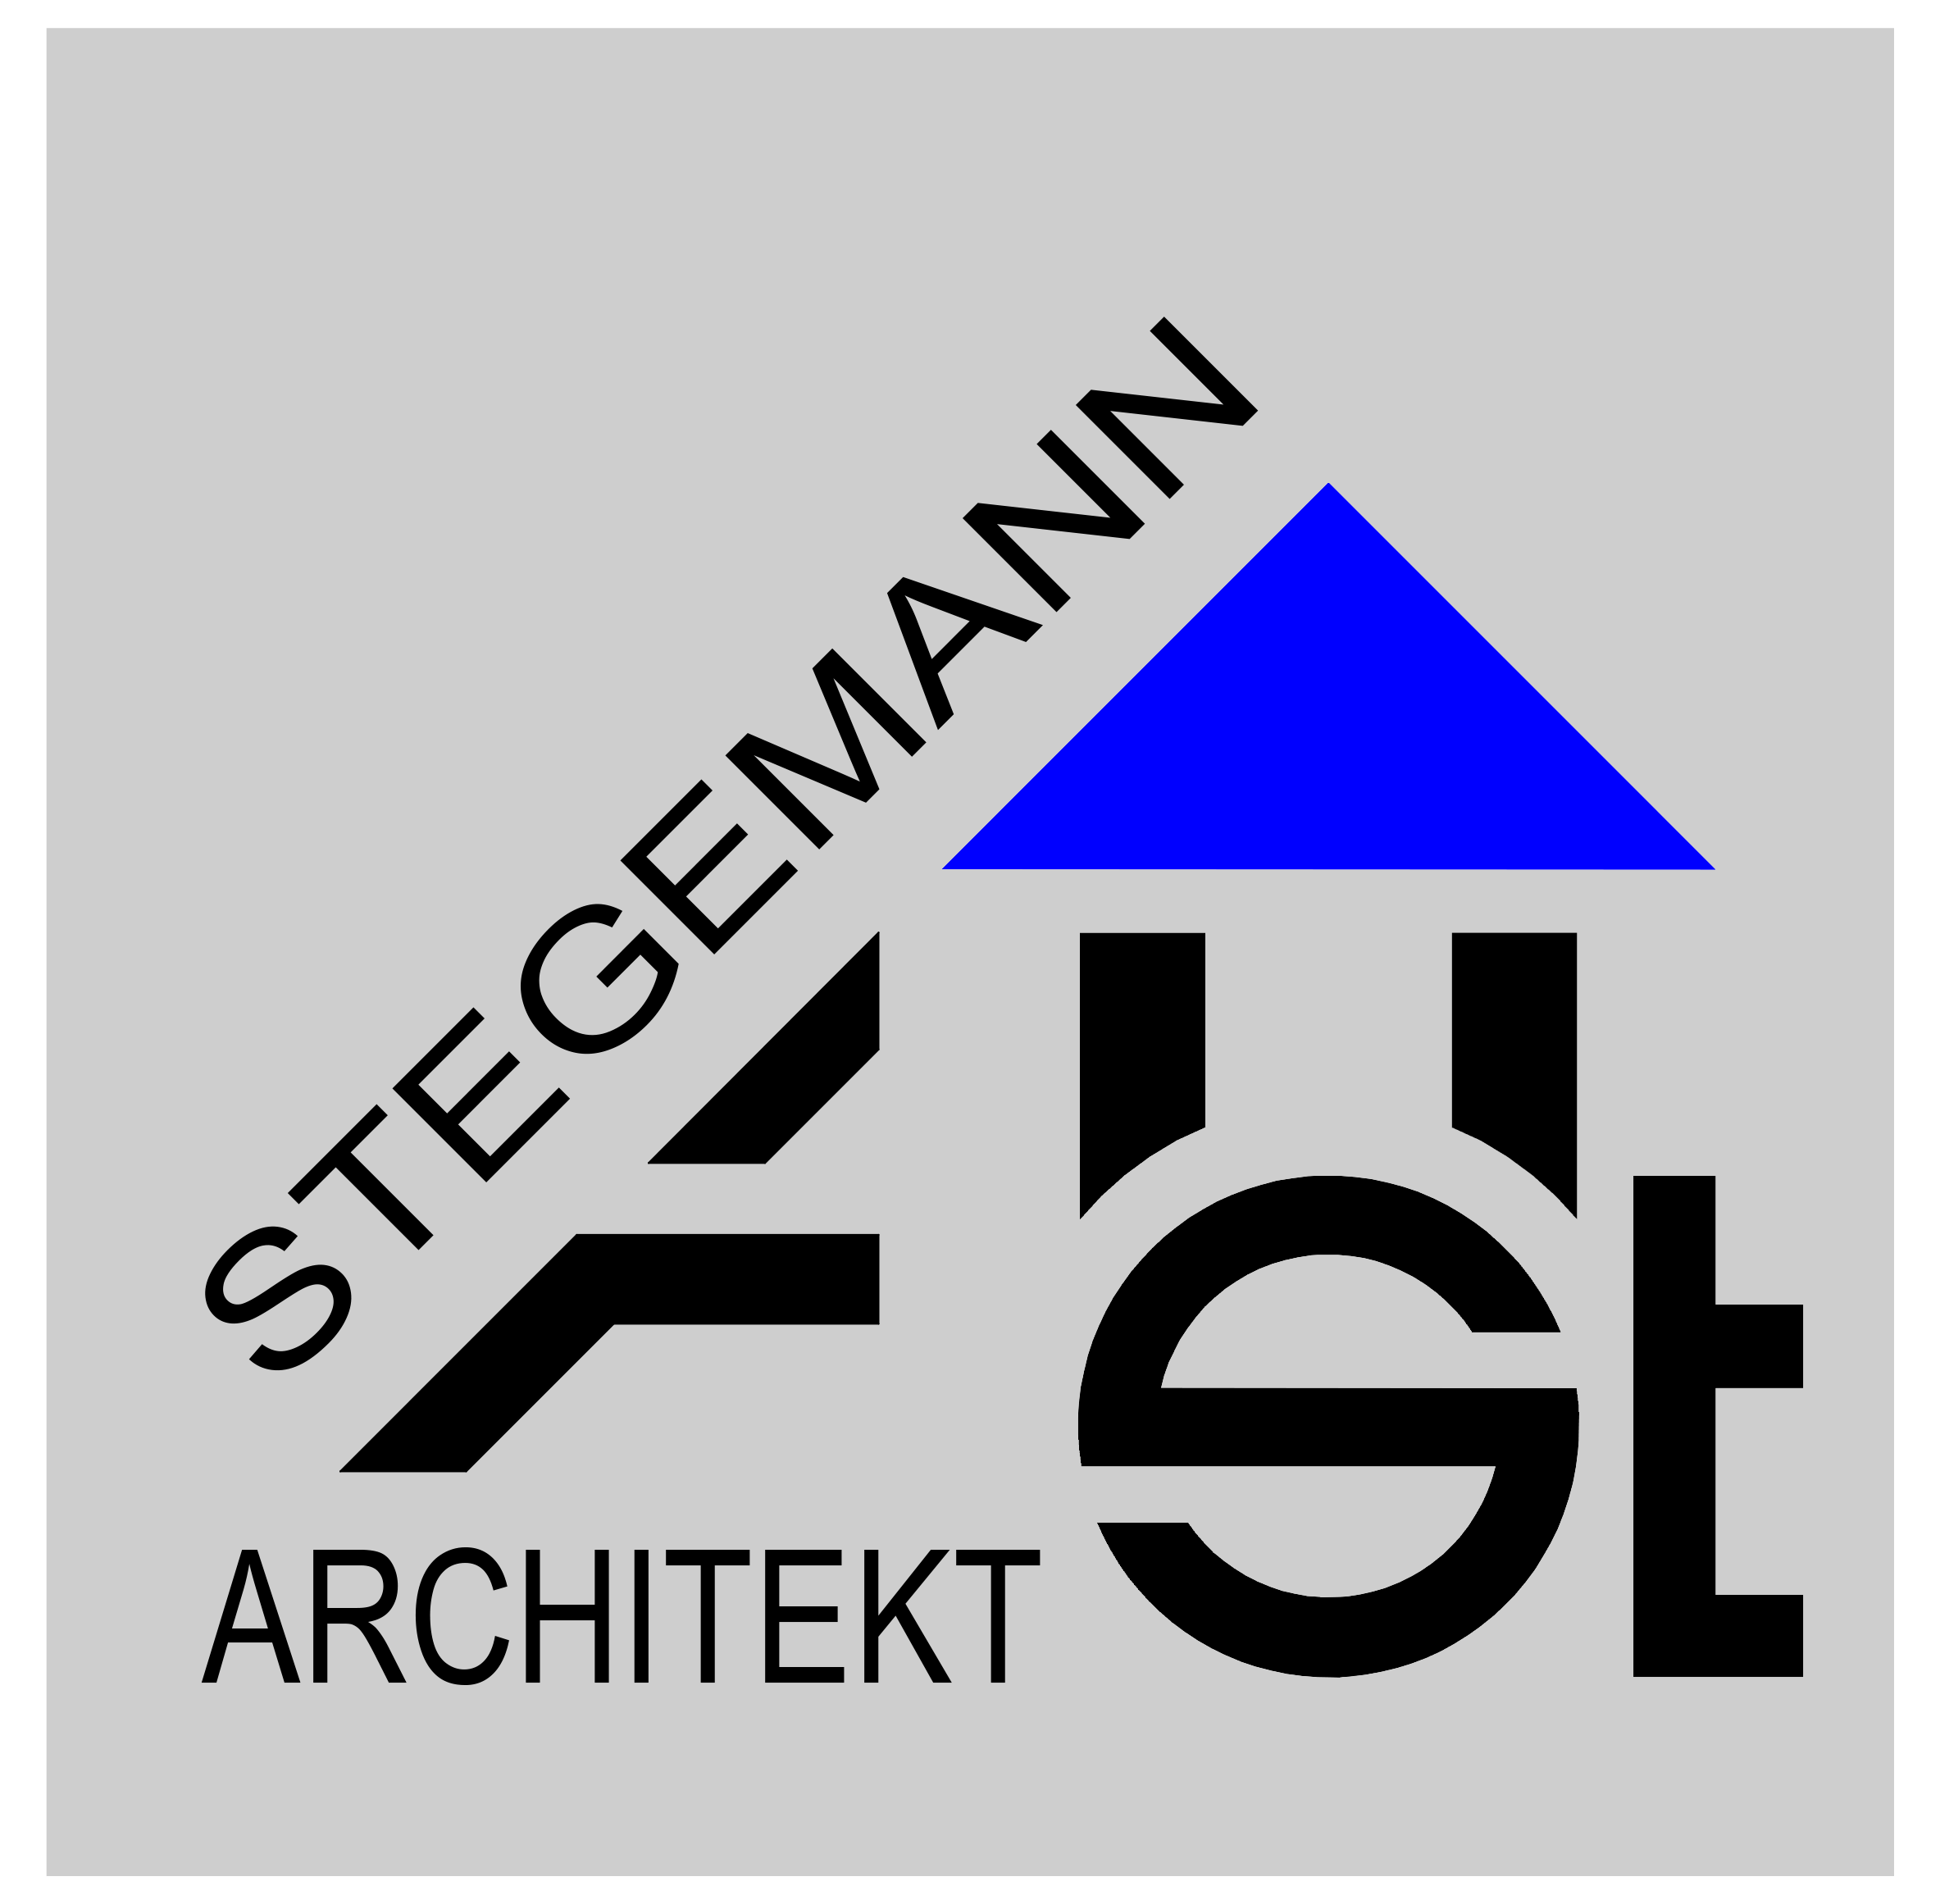 LOGO Architekturbüro-revit_grey